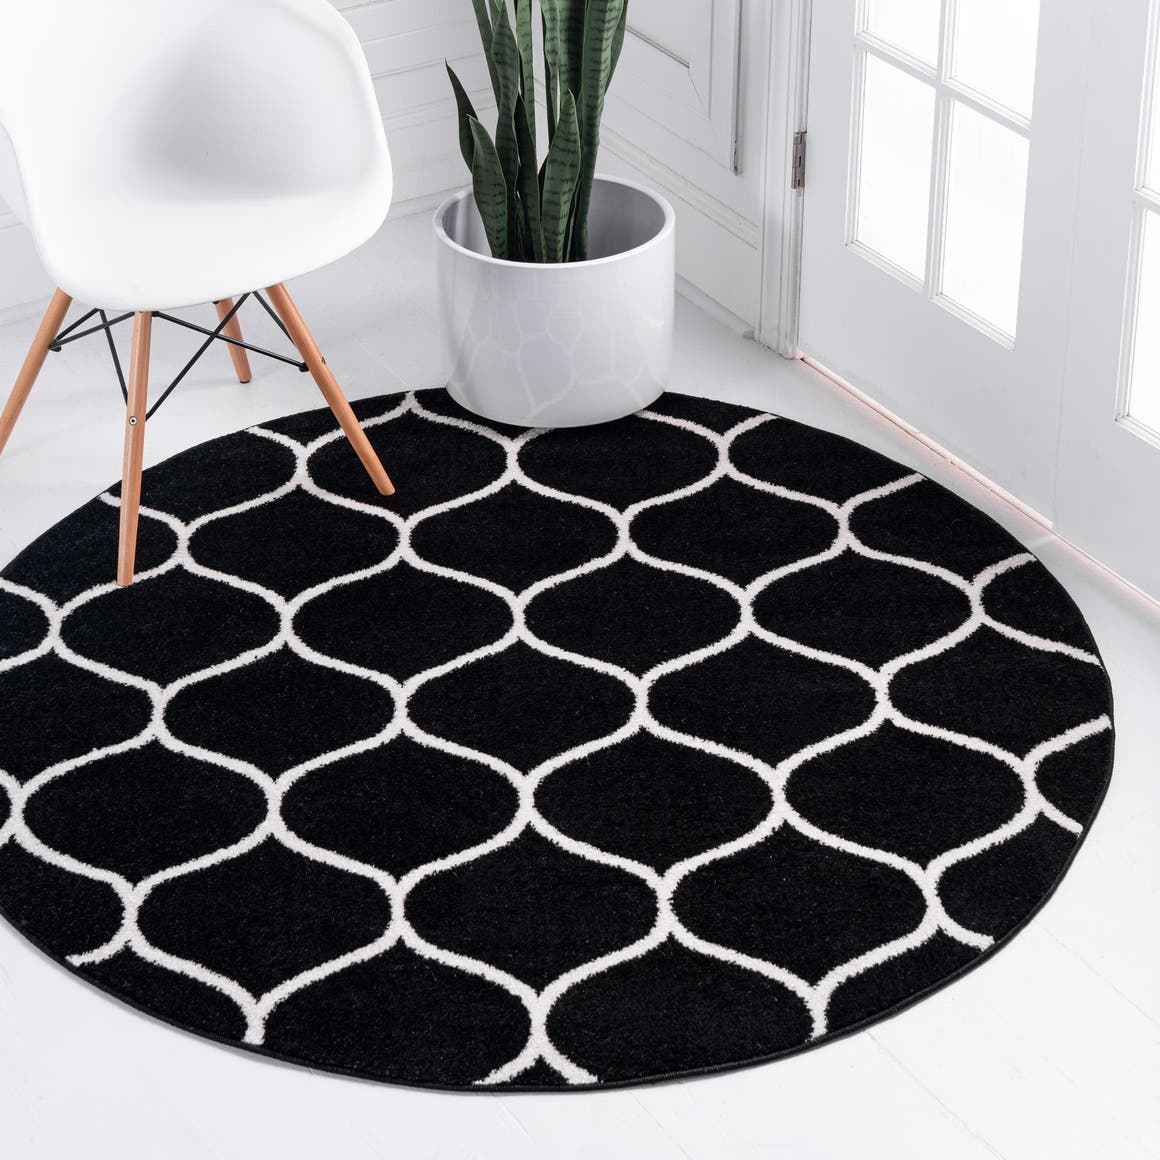 4' x 4' Trellis Frieze Round Rug main image